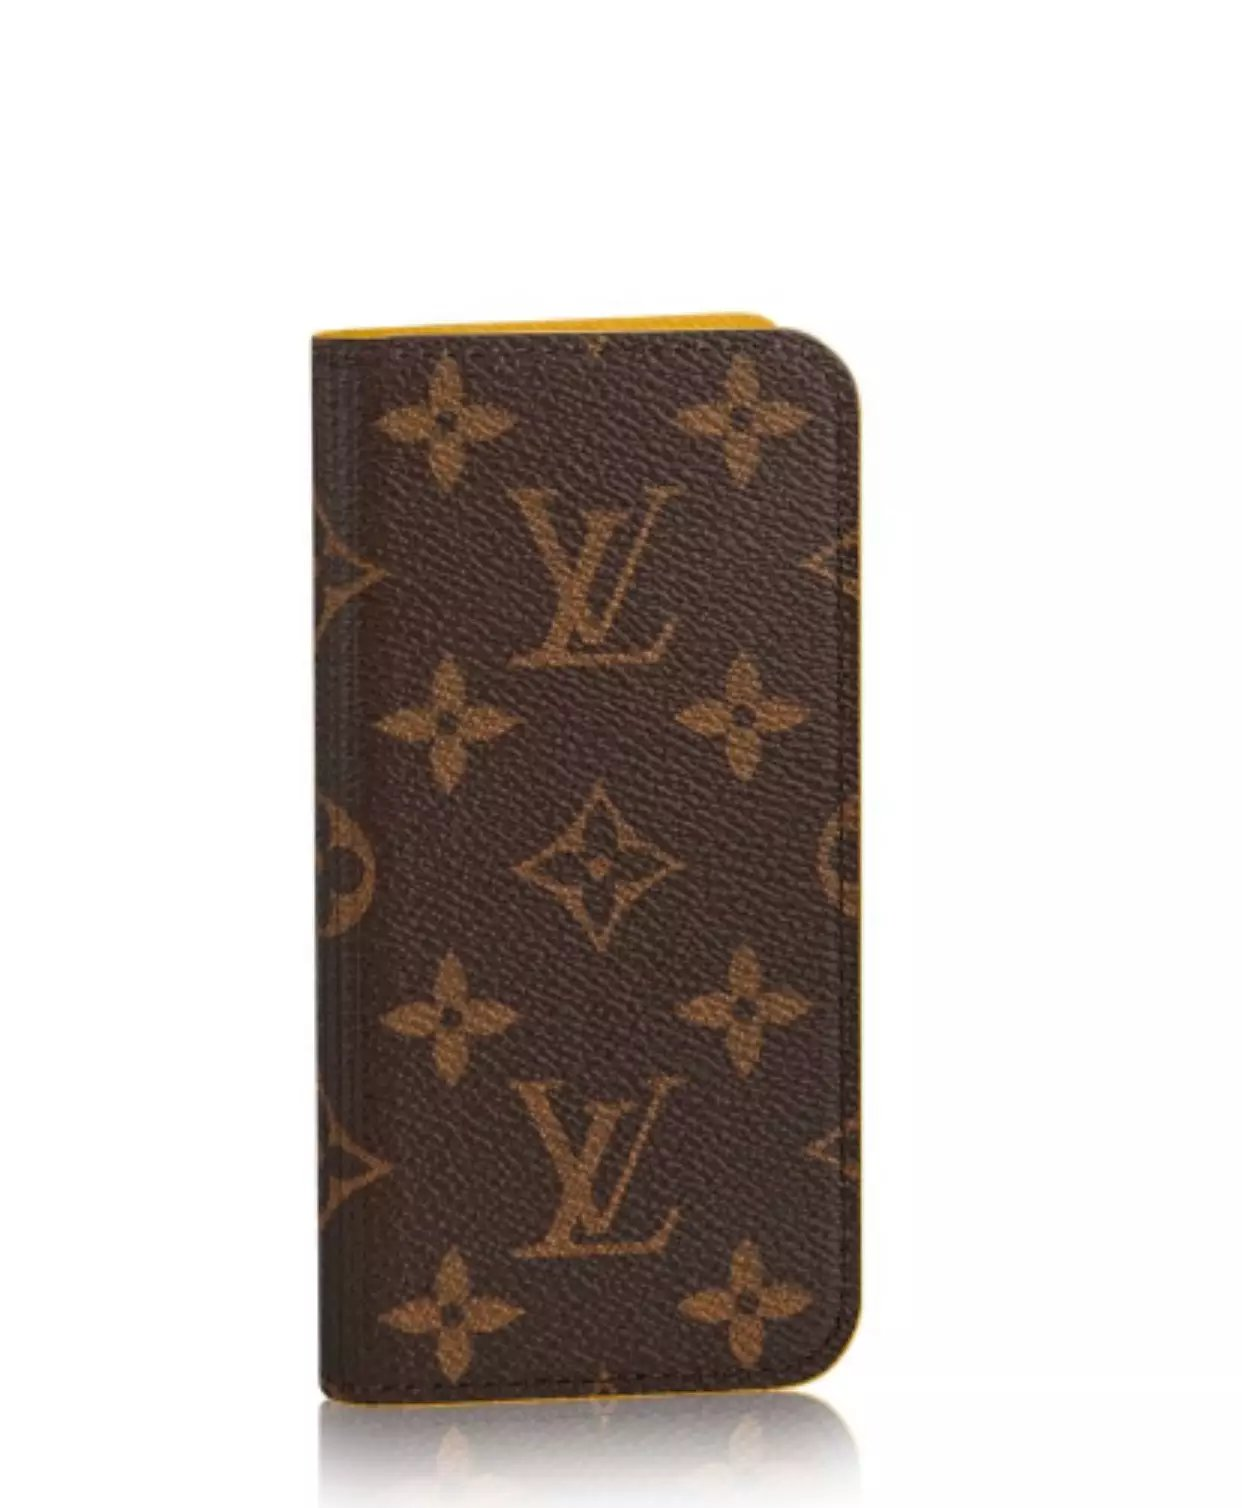 iphone hüllen bestellen schutzhülle für iphone Louis Vuitton iphone 8 Plus hüllen spezielle iphone hüllen iphone 8 Plus designer hülle ledertasche iphone handyhüllen online gestalten iphone hülle gravur original iphone 8 Plus hülle